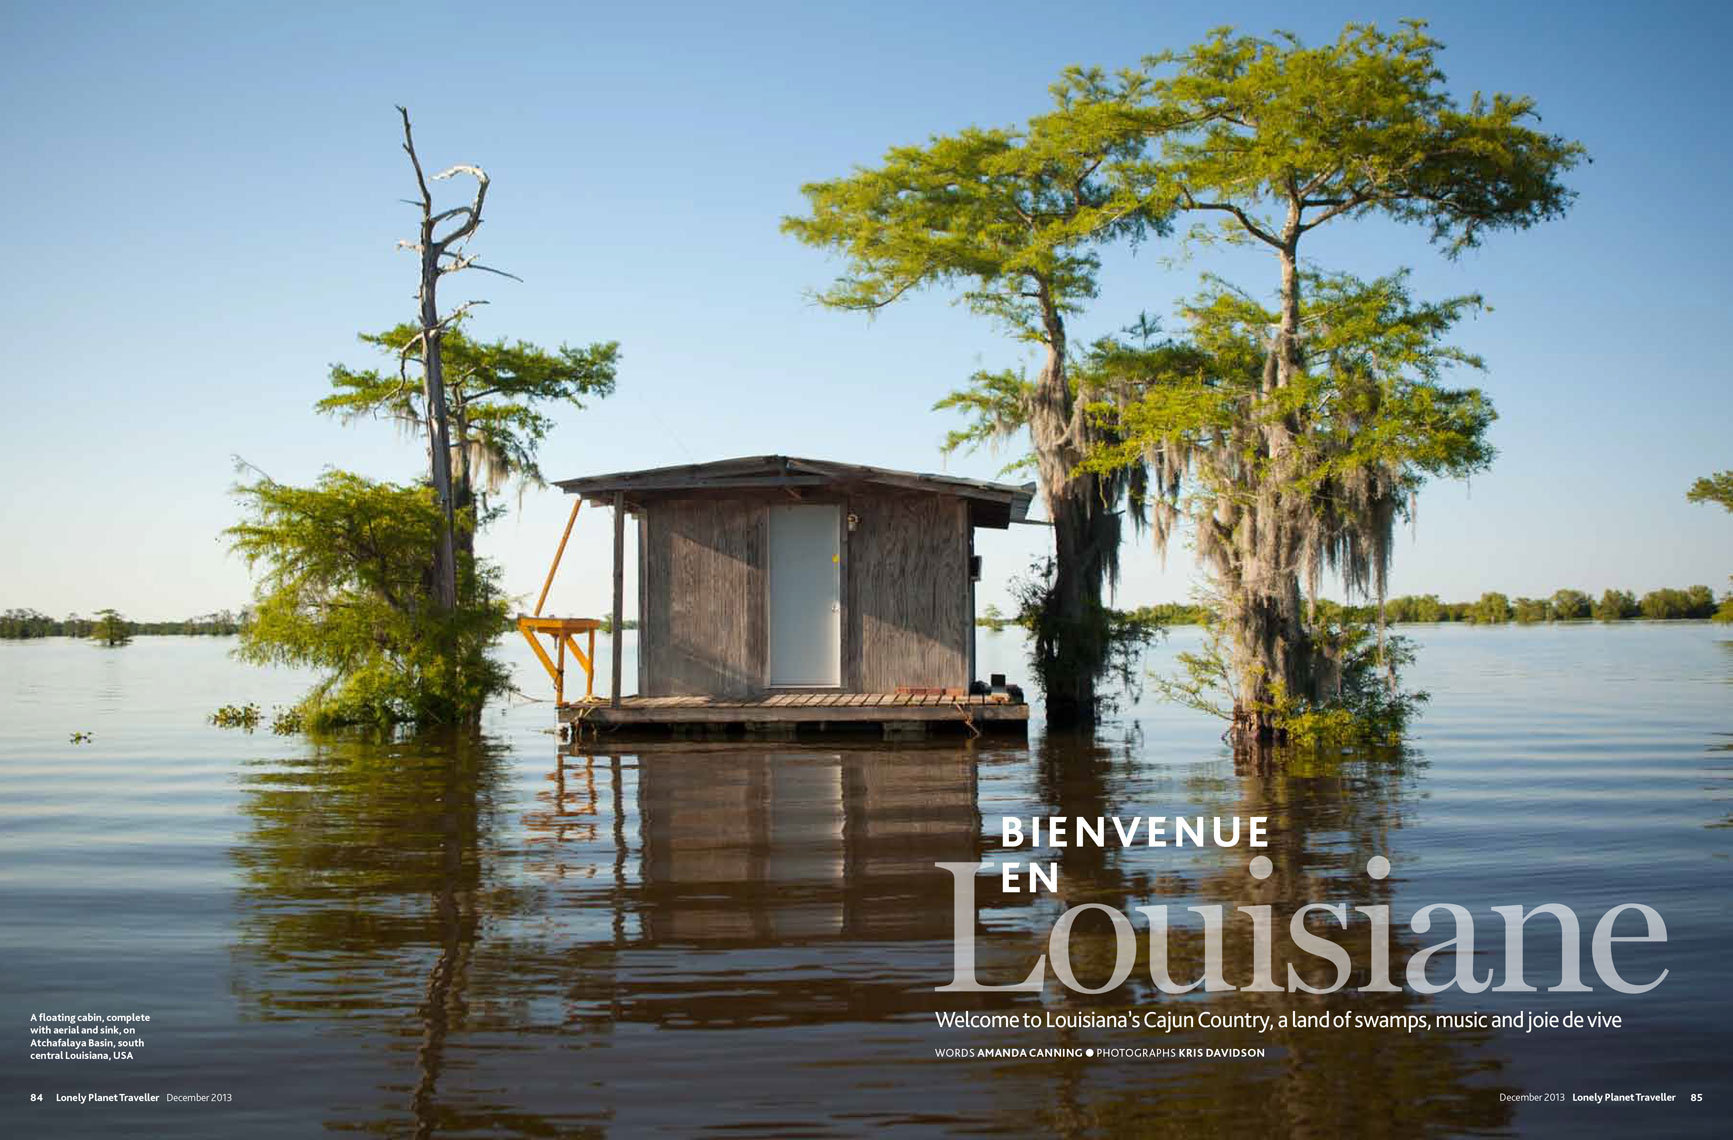 Kris_Davidson_Artist_Photographer_Lonely_Planet_Louisiana_1